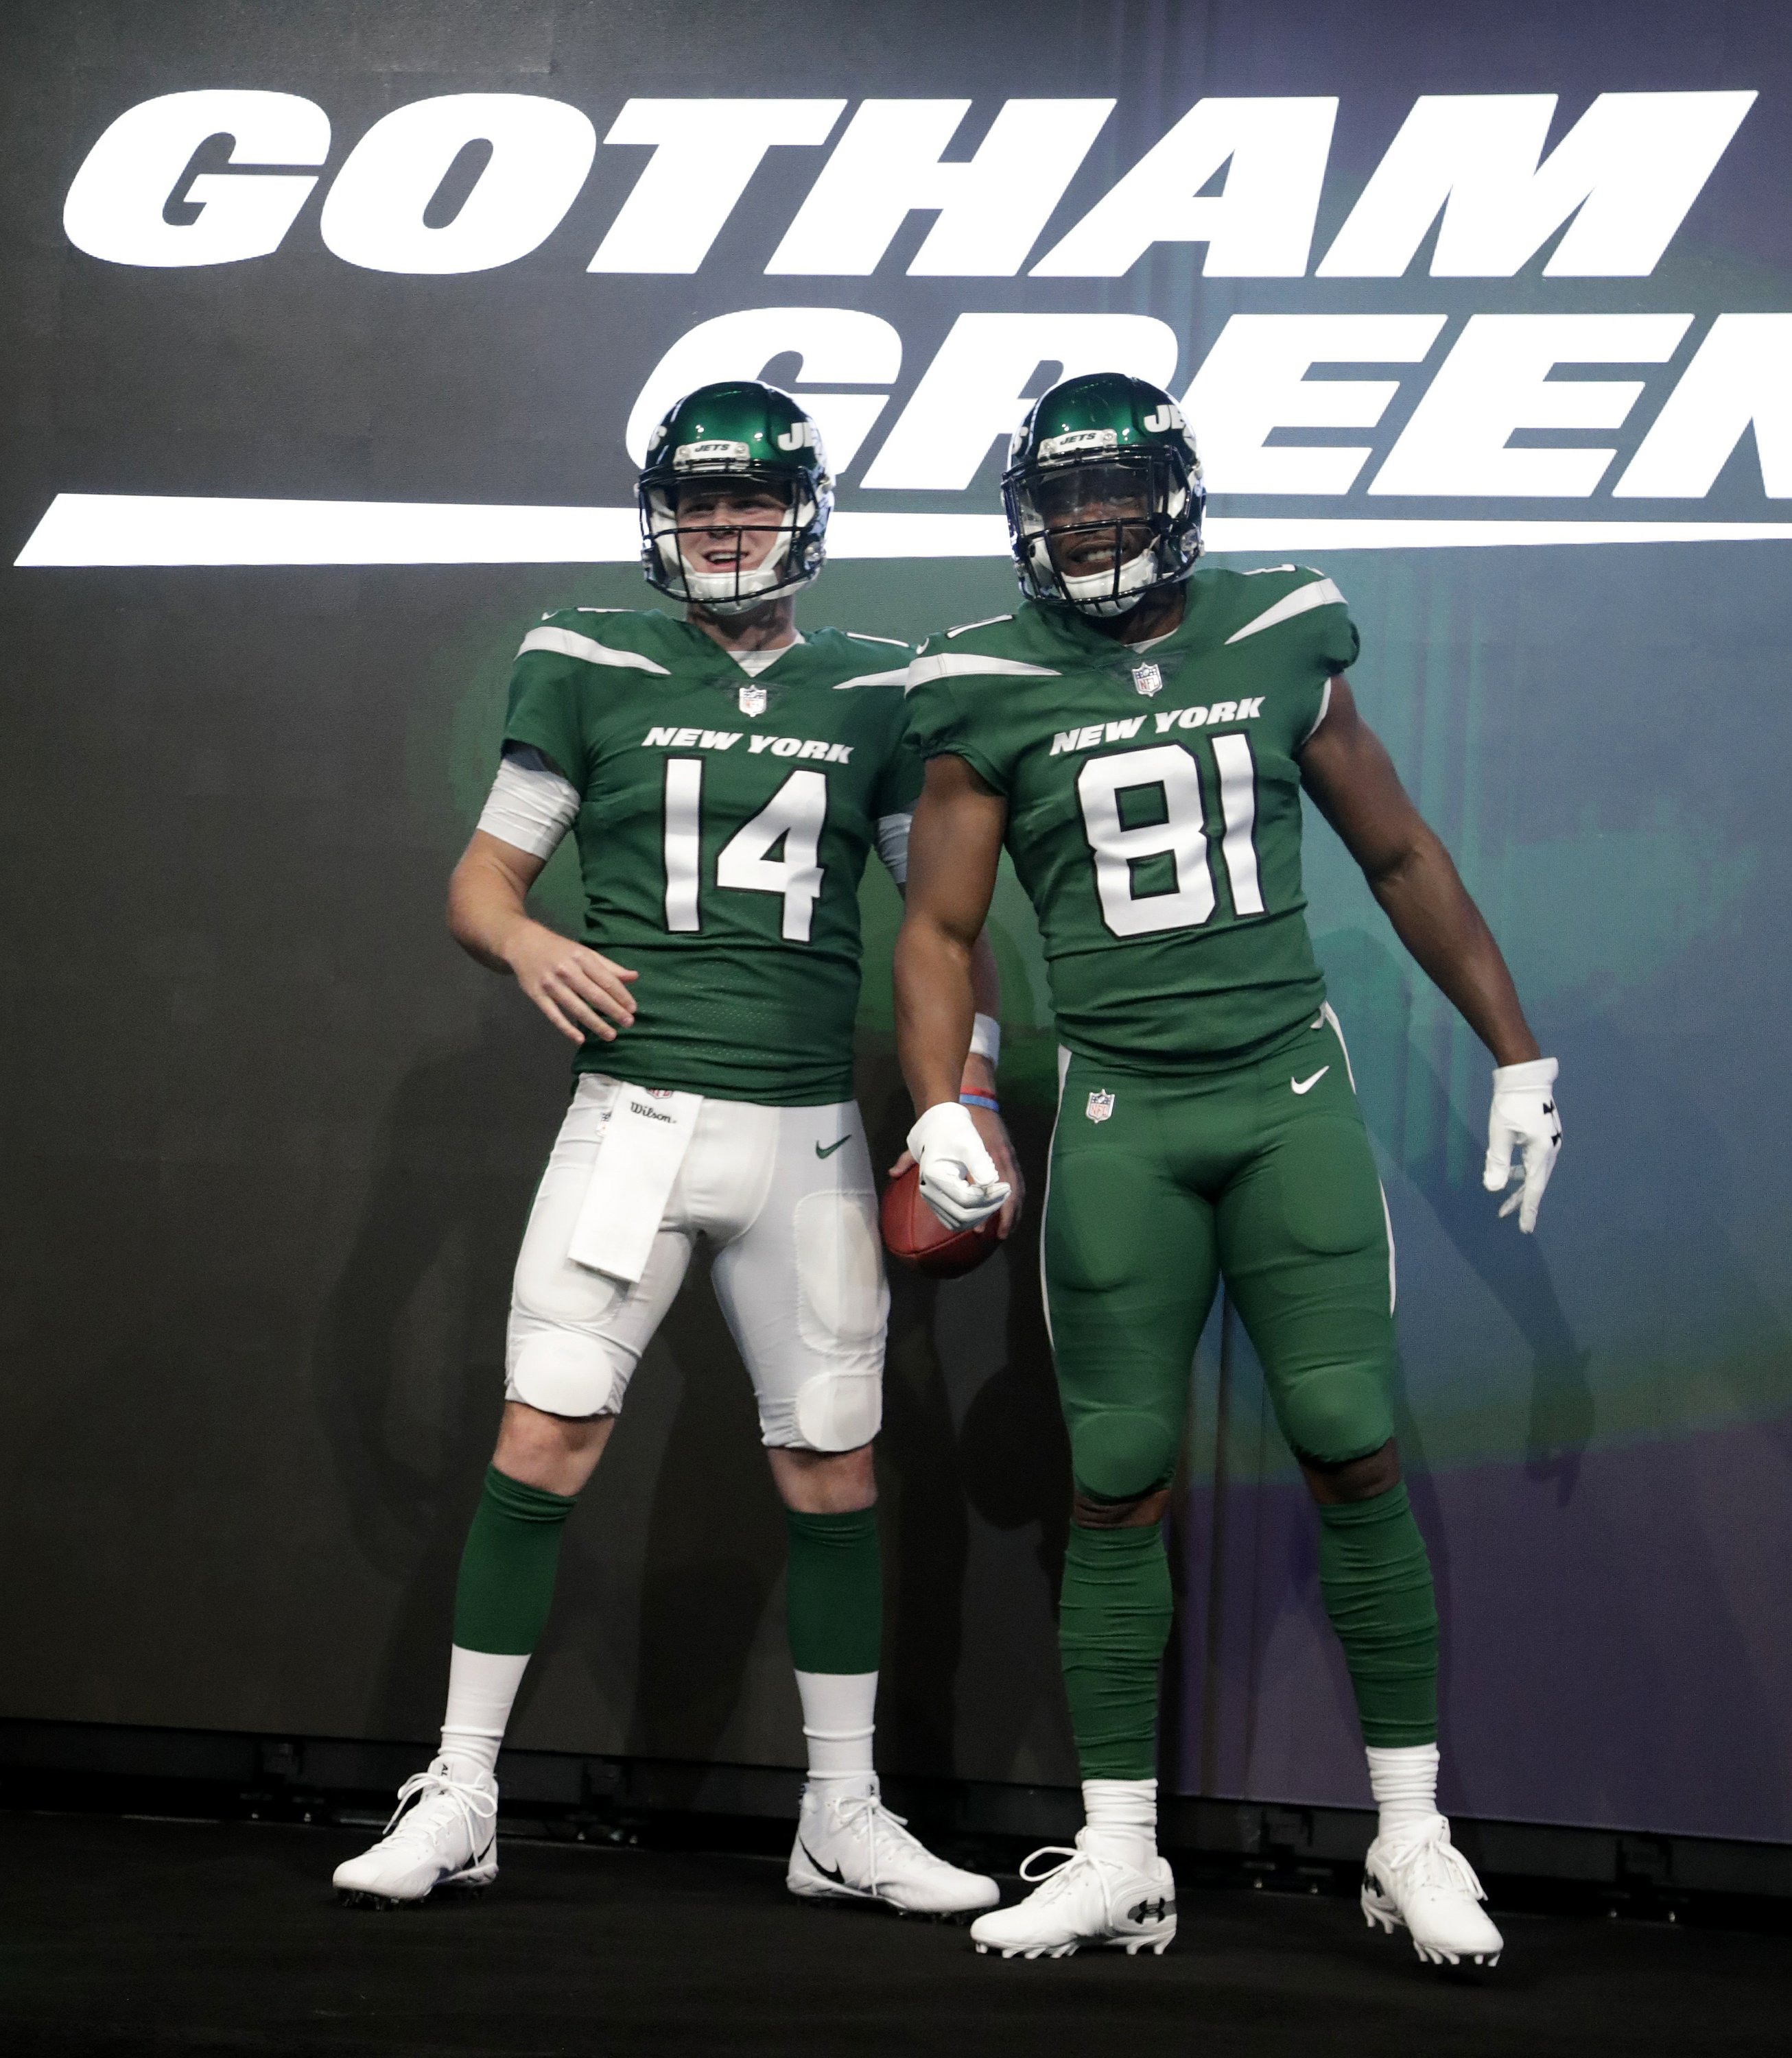 b0f97af5faa Jets unveil new uniforms